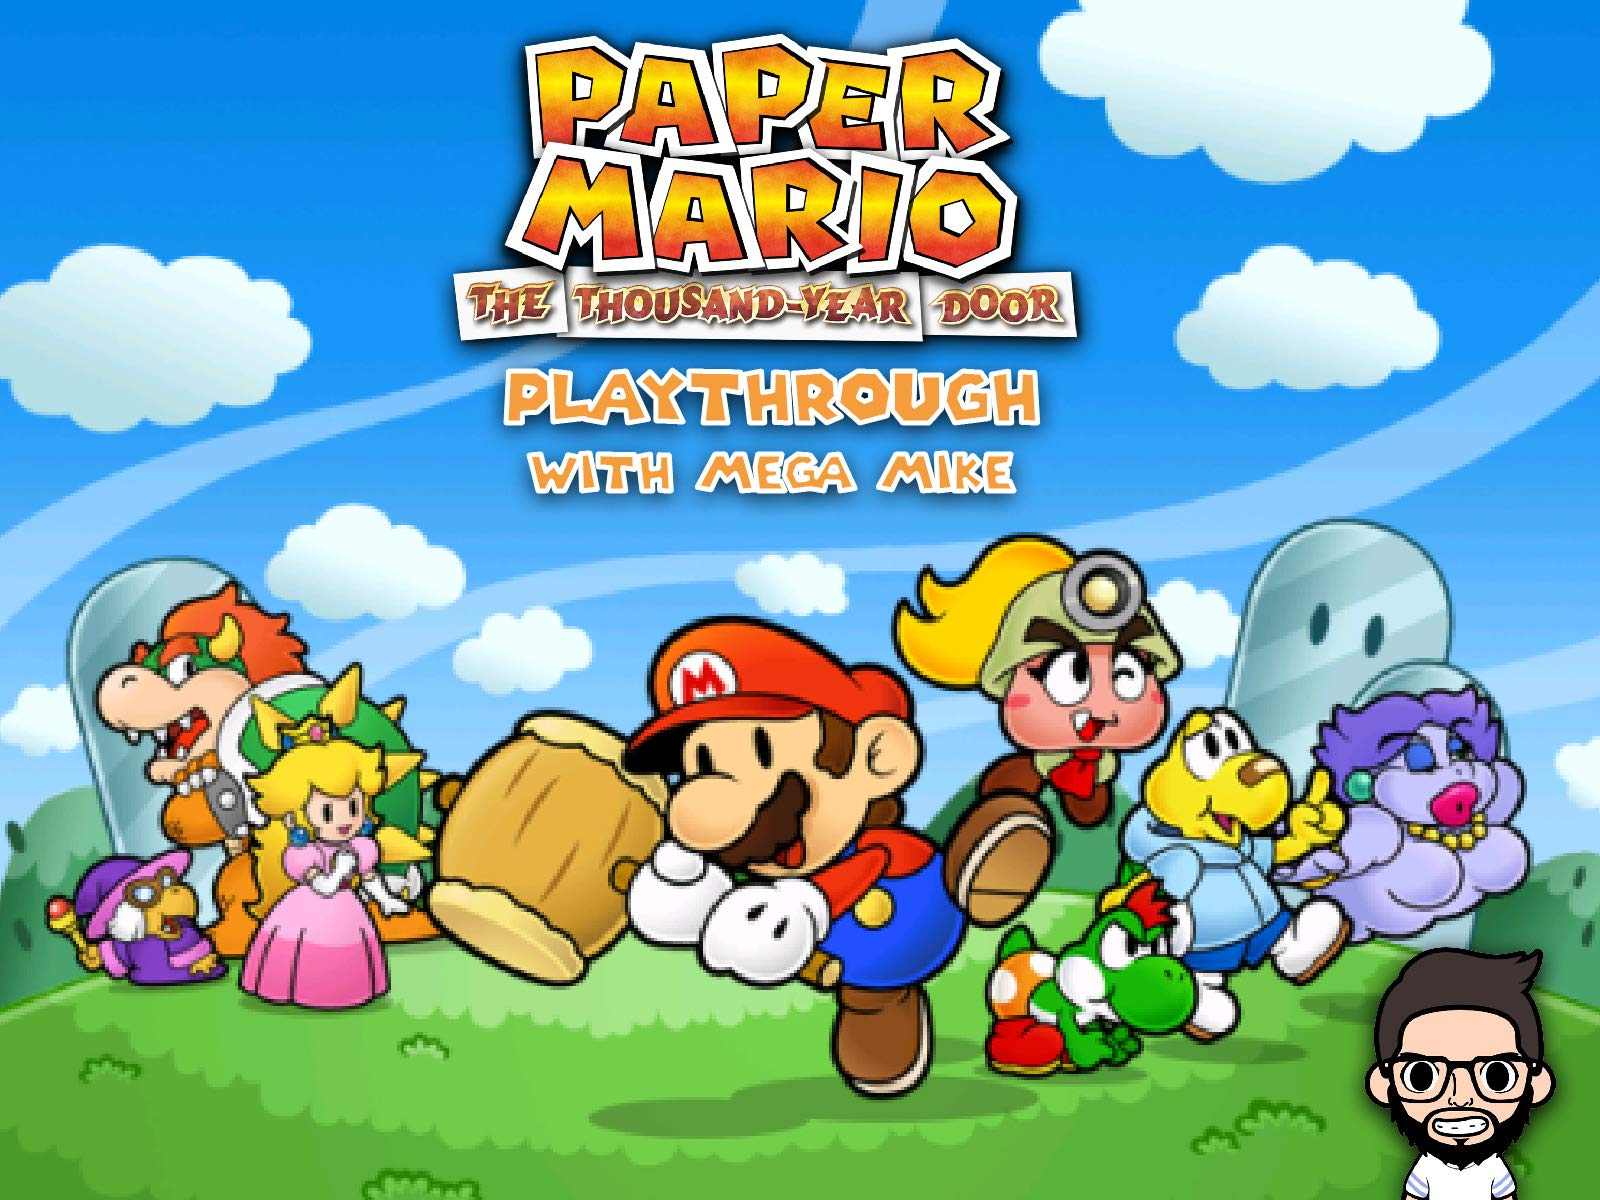 Watch Paper Mario The Thousand Year Door Playthrough With Mega